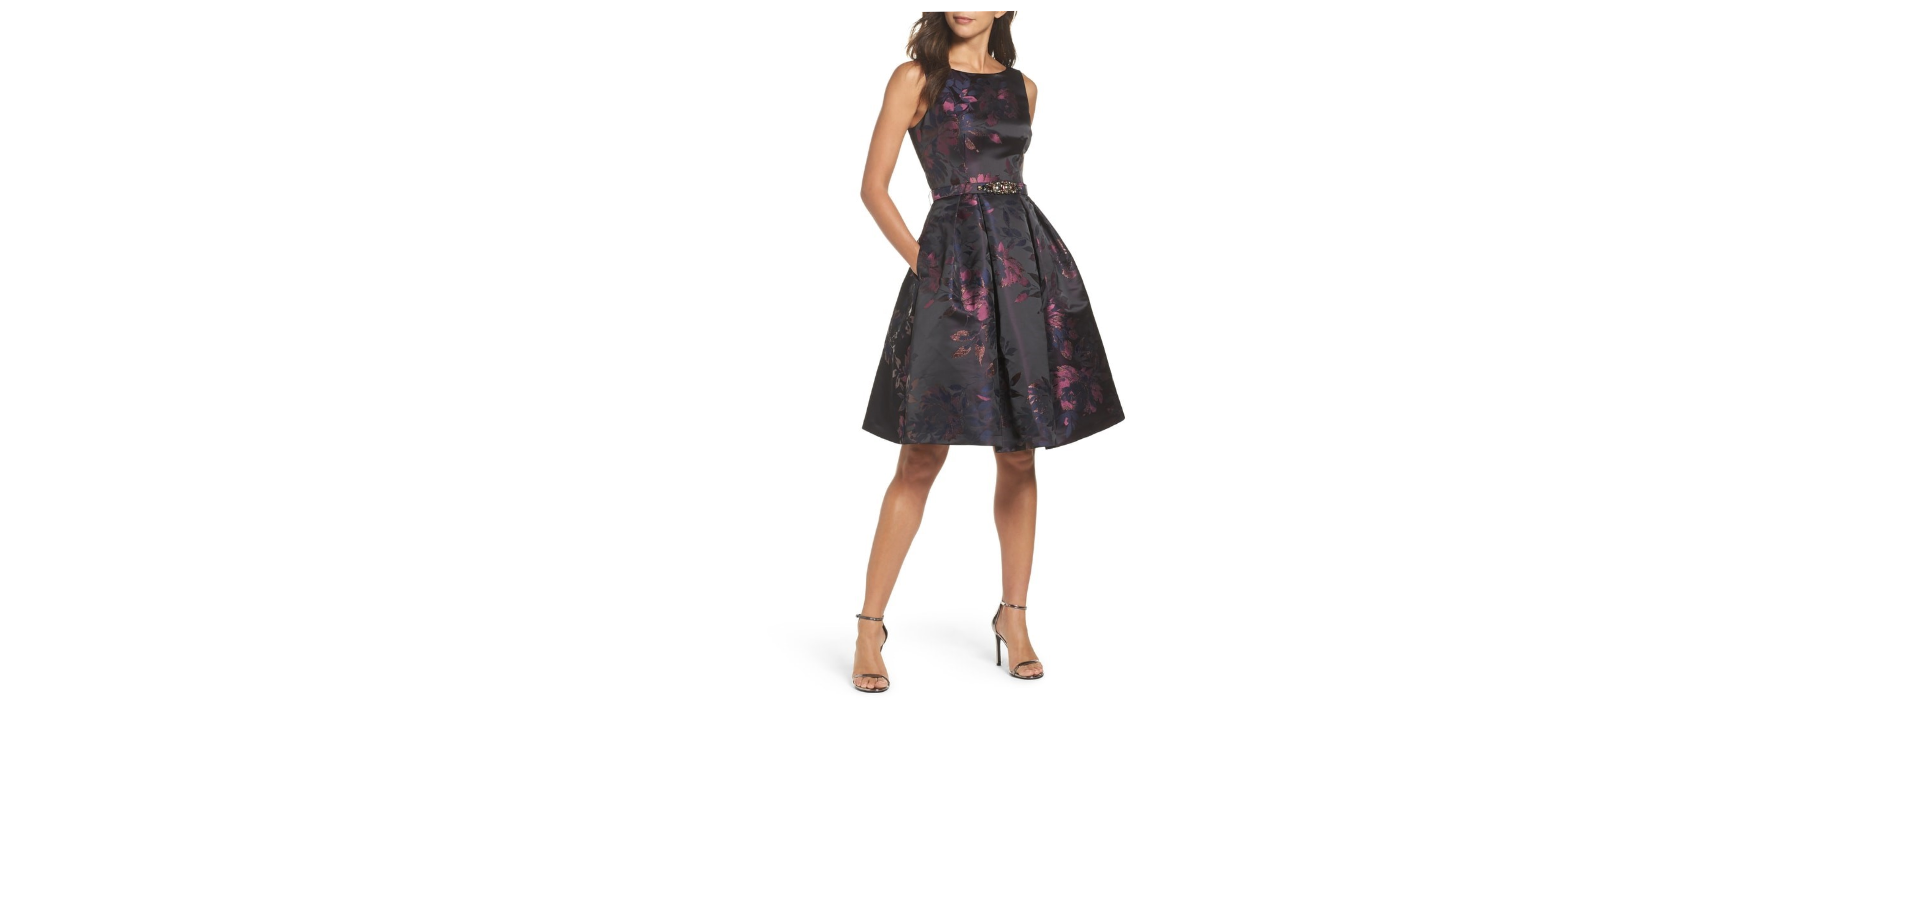 Fit and Flare dress works well on the Triangle body shape. This dress shows off the arms while the flare conceals the larger hips.